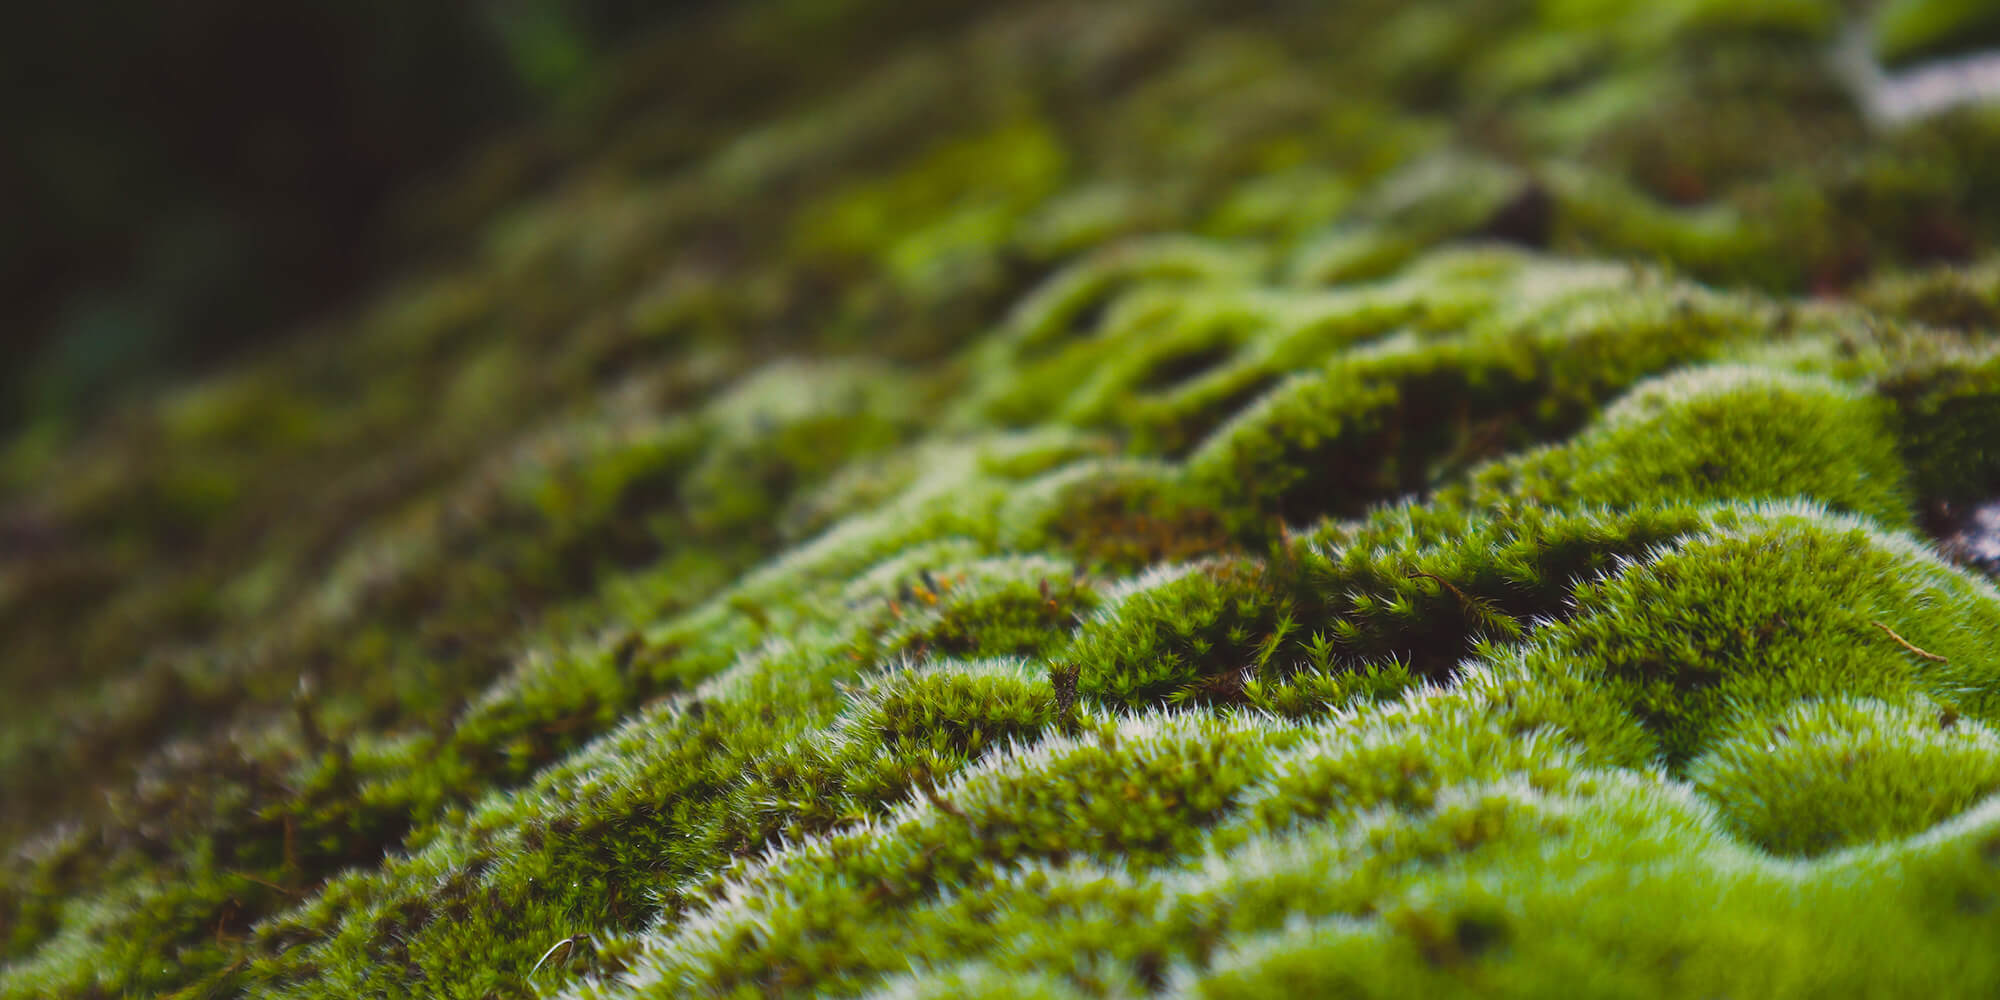 Close up of moss growing